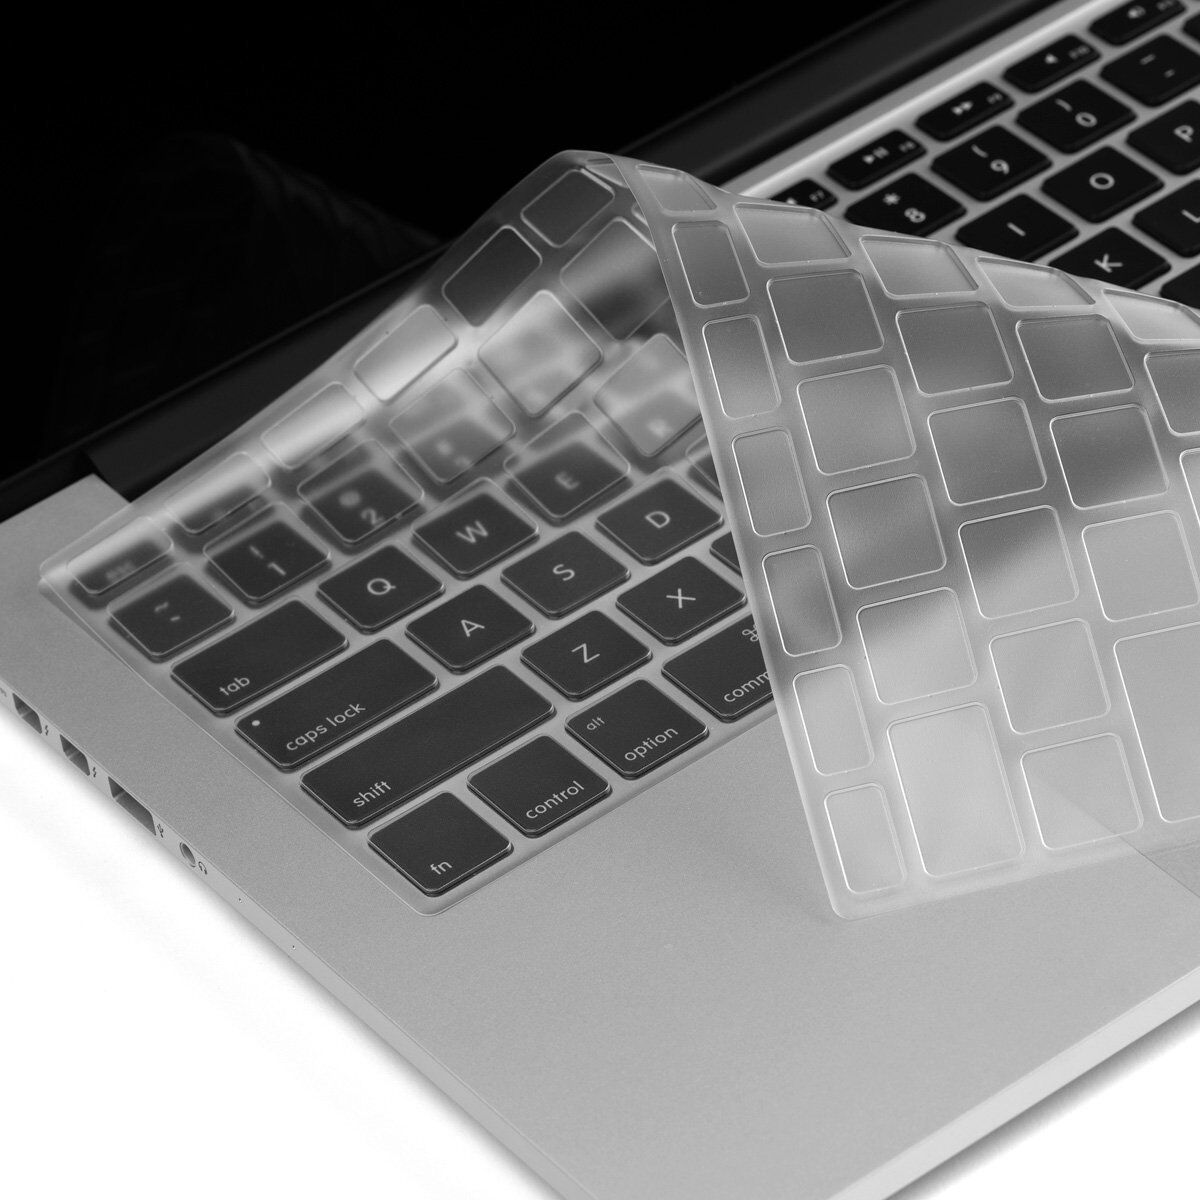 clear thin tpu keyboard protector cover skin for apple macbook pro retina 13 15 ebay. Black Bedroom Furniture Sets. Home Design Ideas